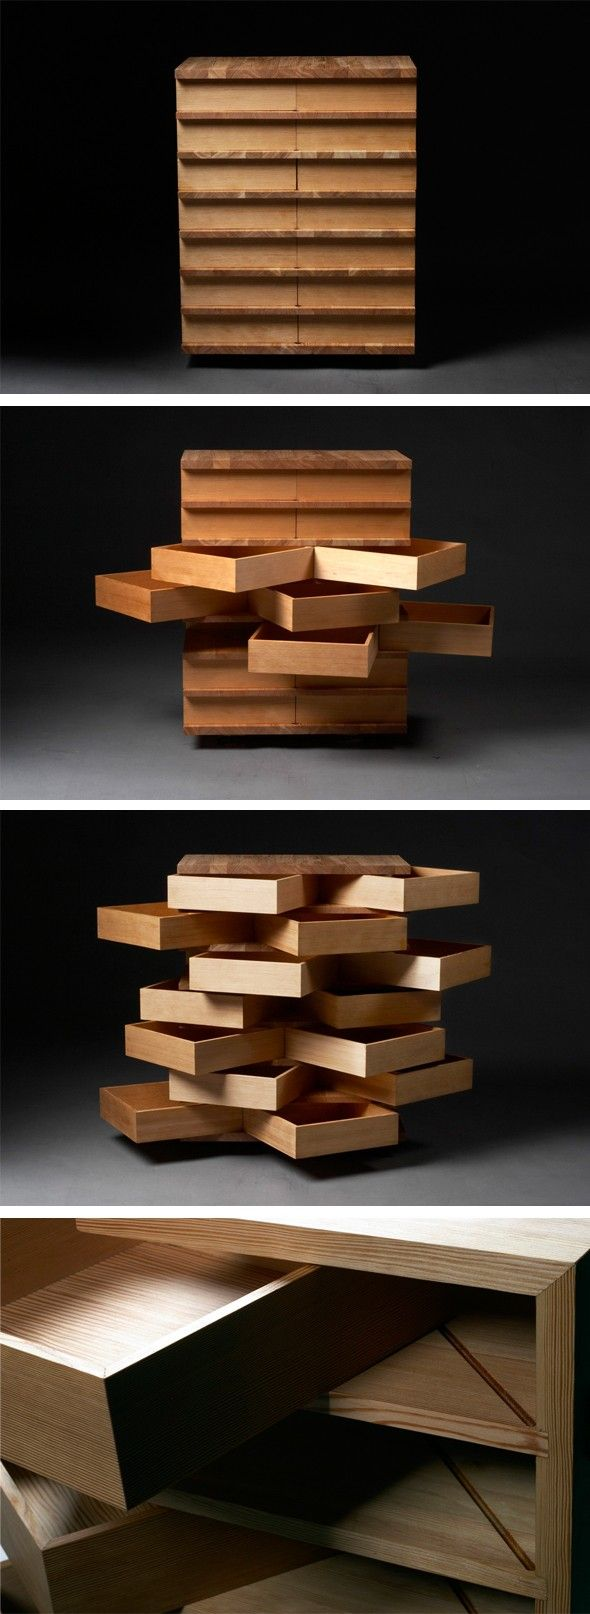 Fjarill Drawers by Danish designer Jakob Jørgensen - Drawers that can be opened in different directions.